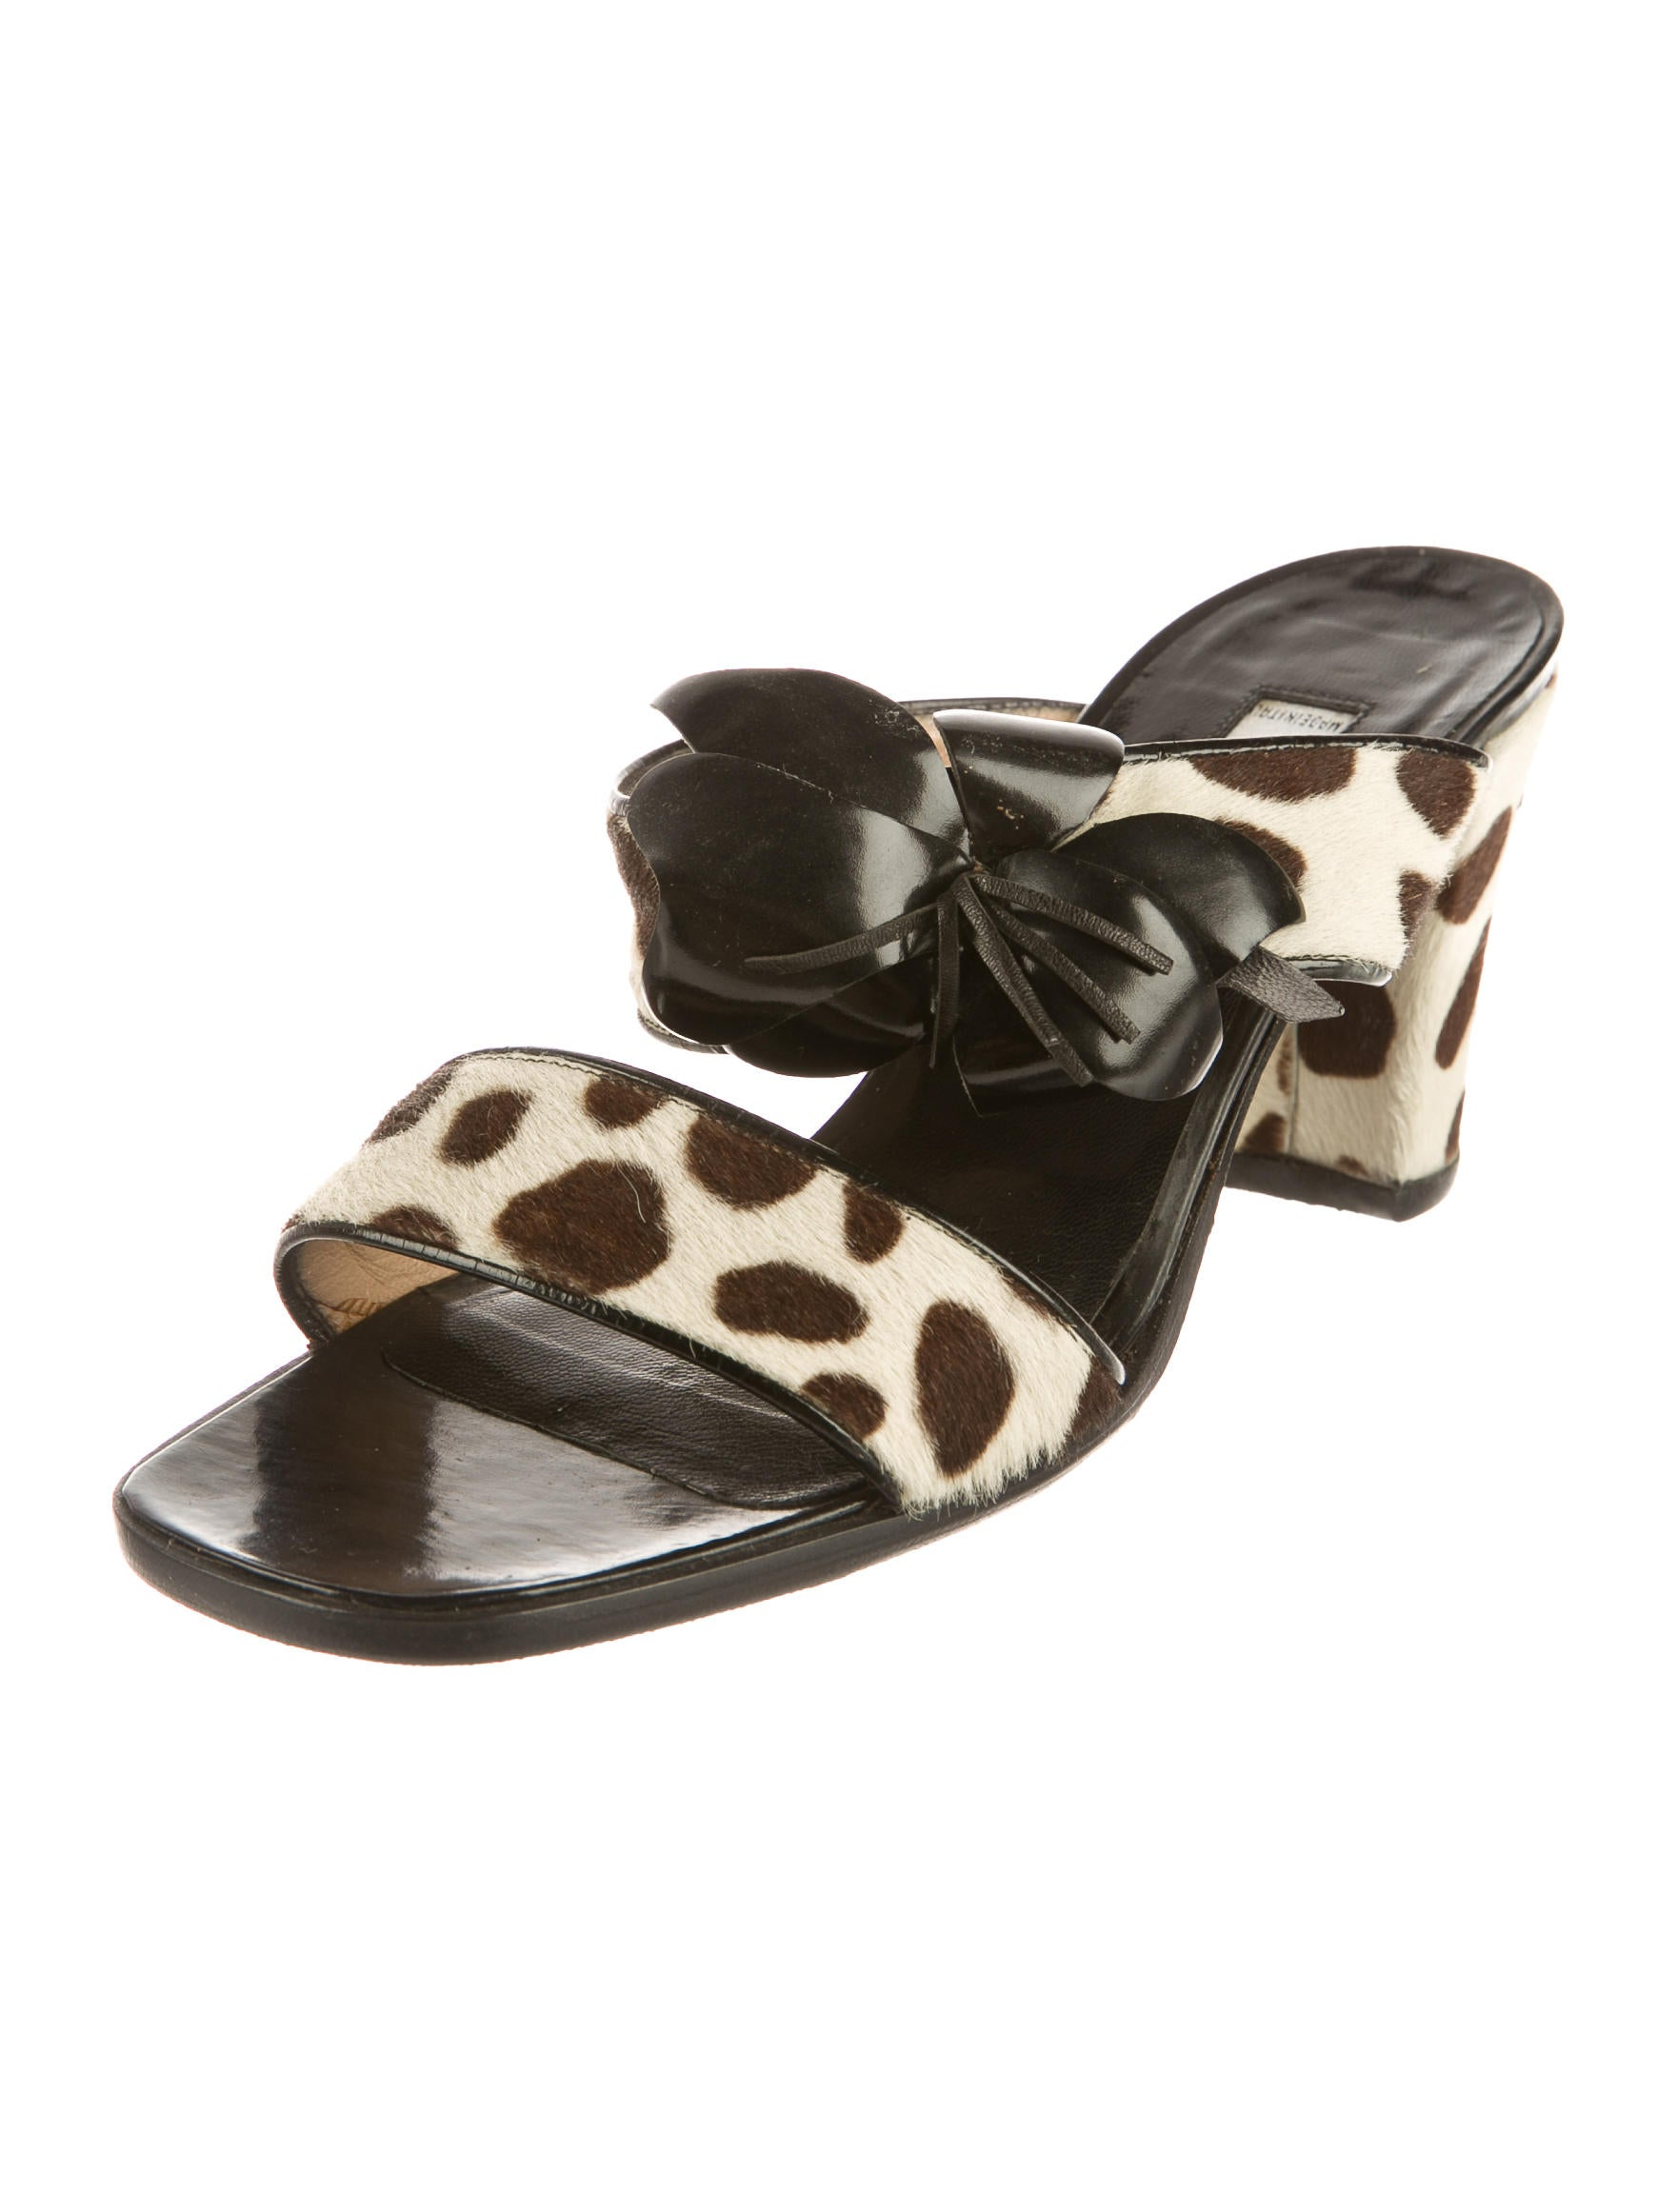 sale affordable Sonia Rykiel Ponyhair Slide Sandals outlet best store to get sale wiki s2qGjEmFMI